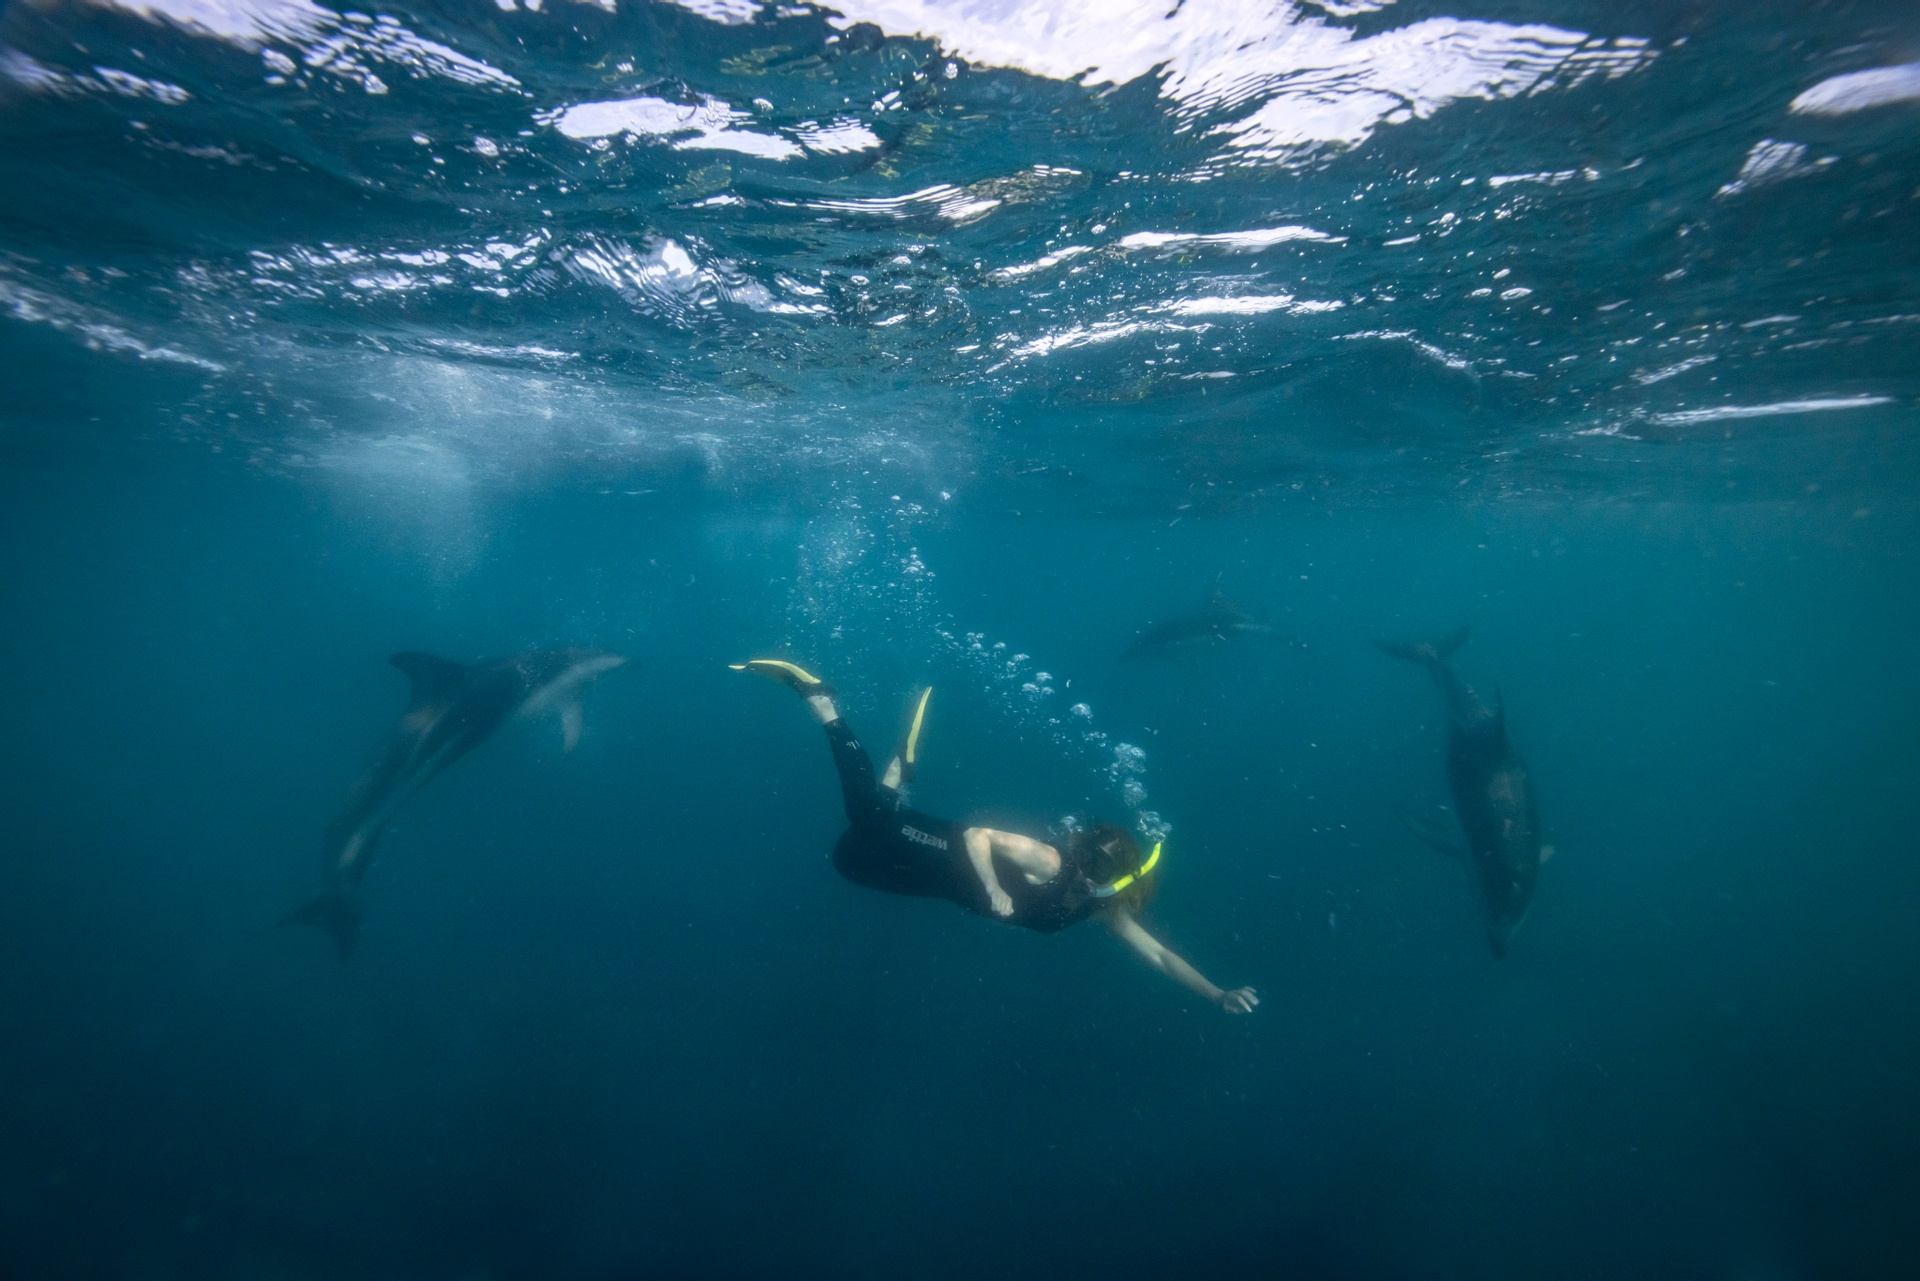 Swimming with the dolphins off Kaikoura. Image courtesy Miles Holden.